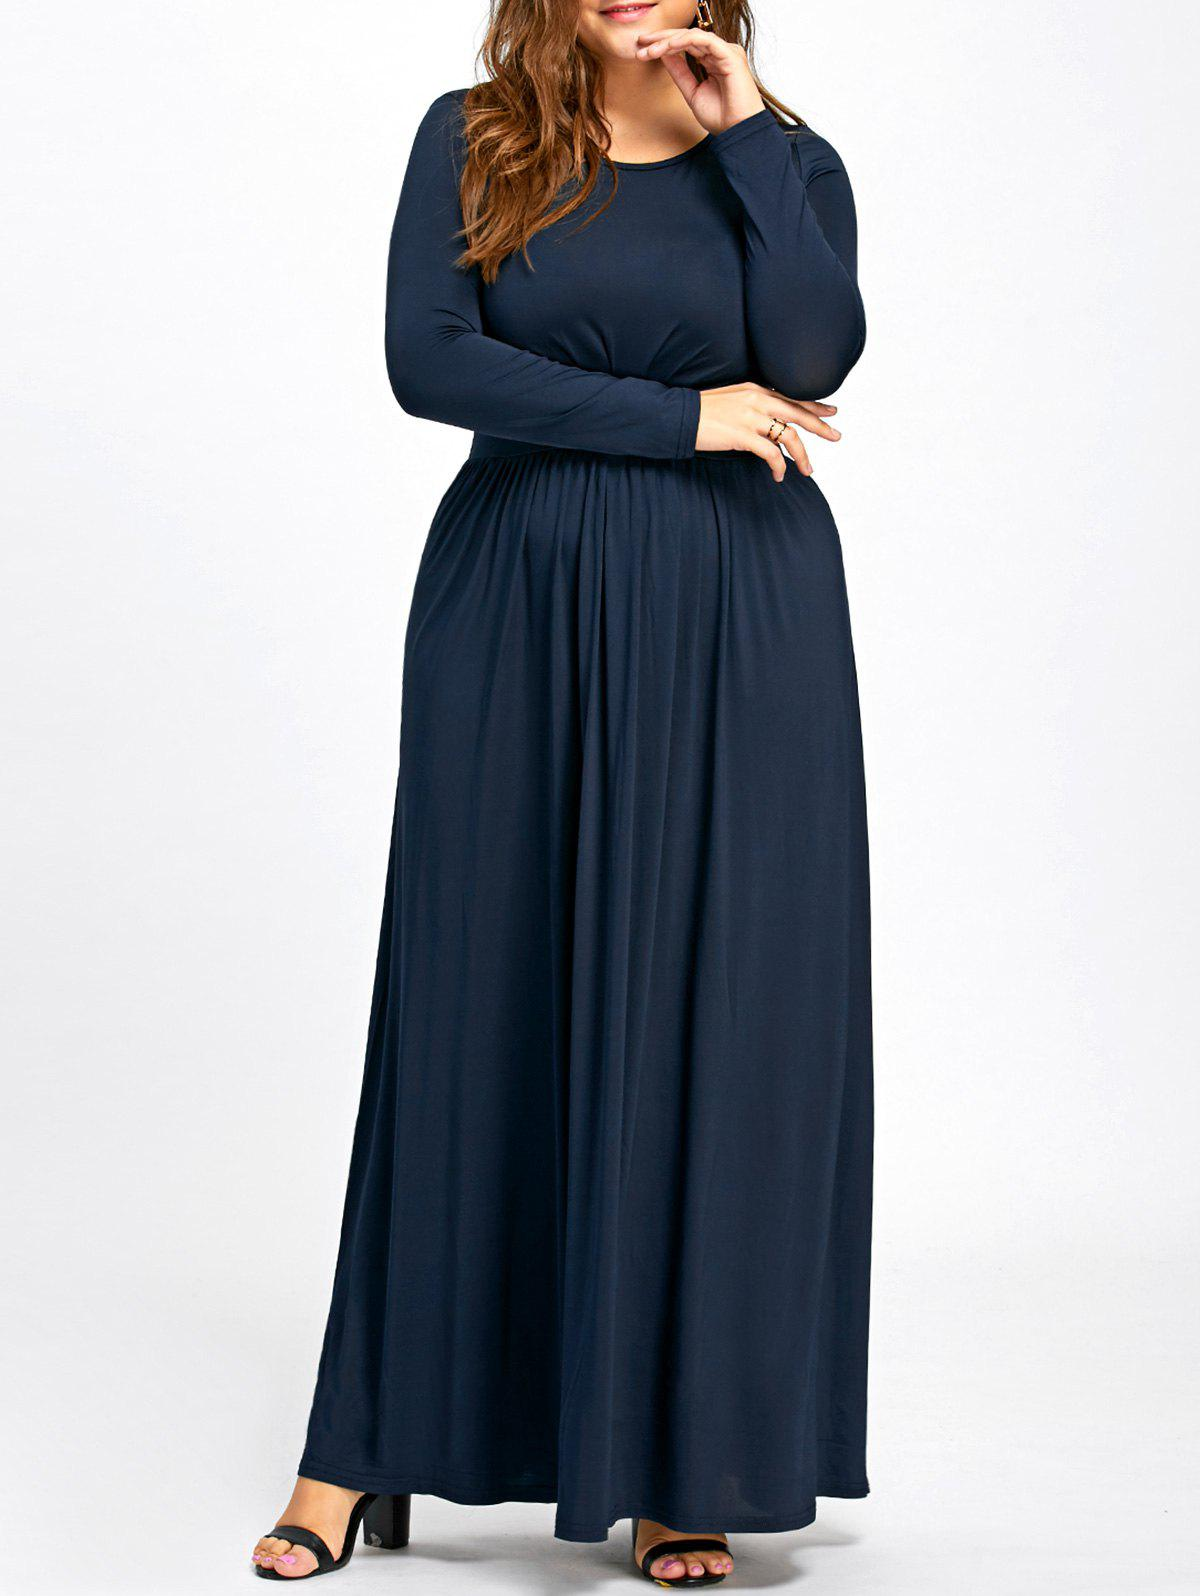 Long Sleeve Plus Size Floor Length Dress - CADETBLUE 3XL